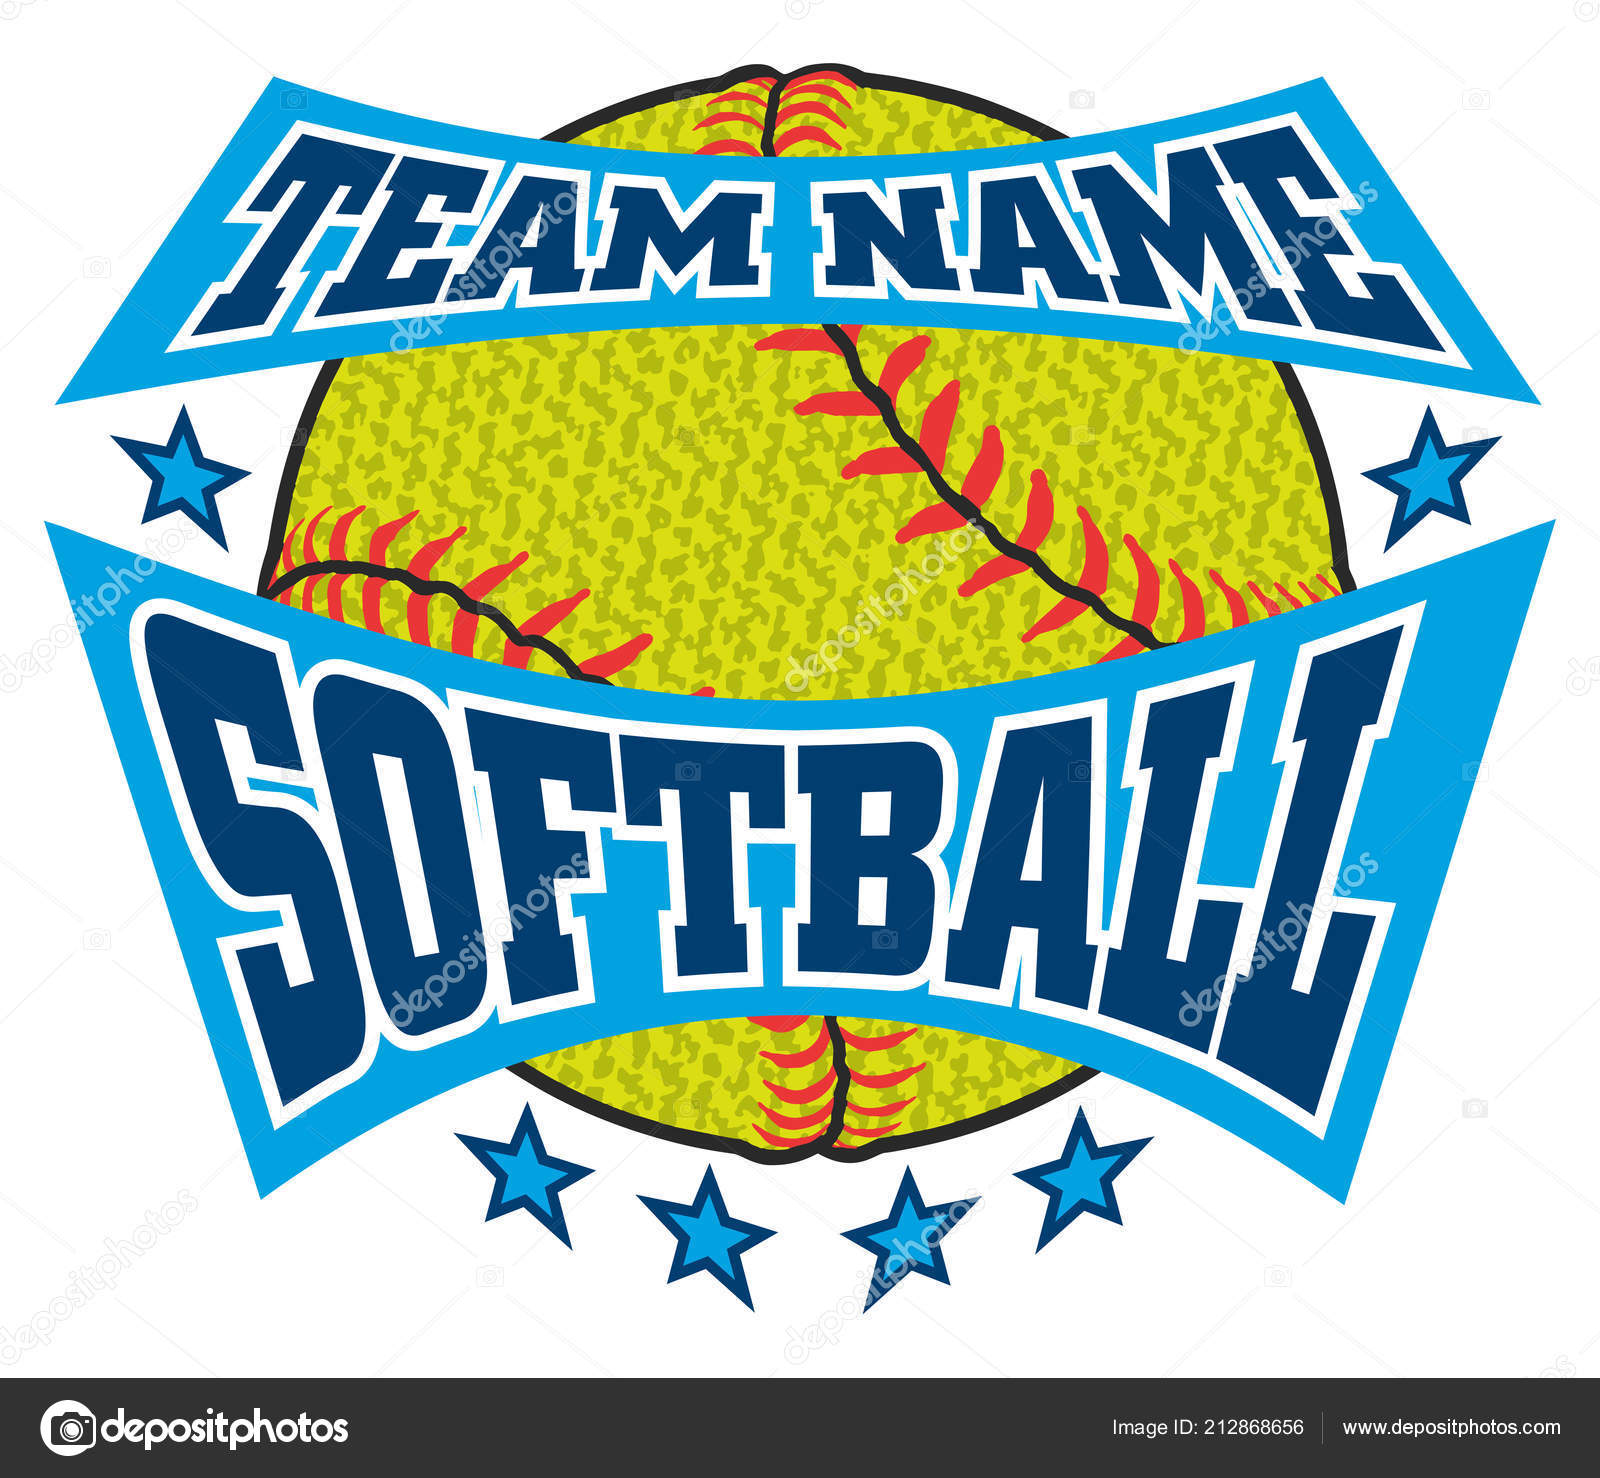 Textured Softball Team Name Design Illustration Softball Design